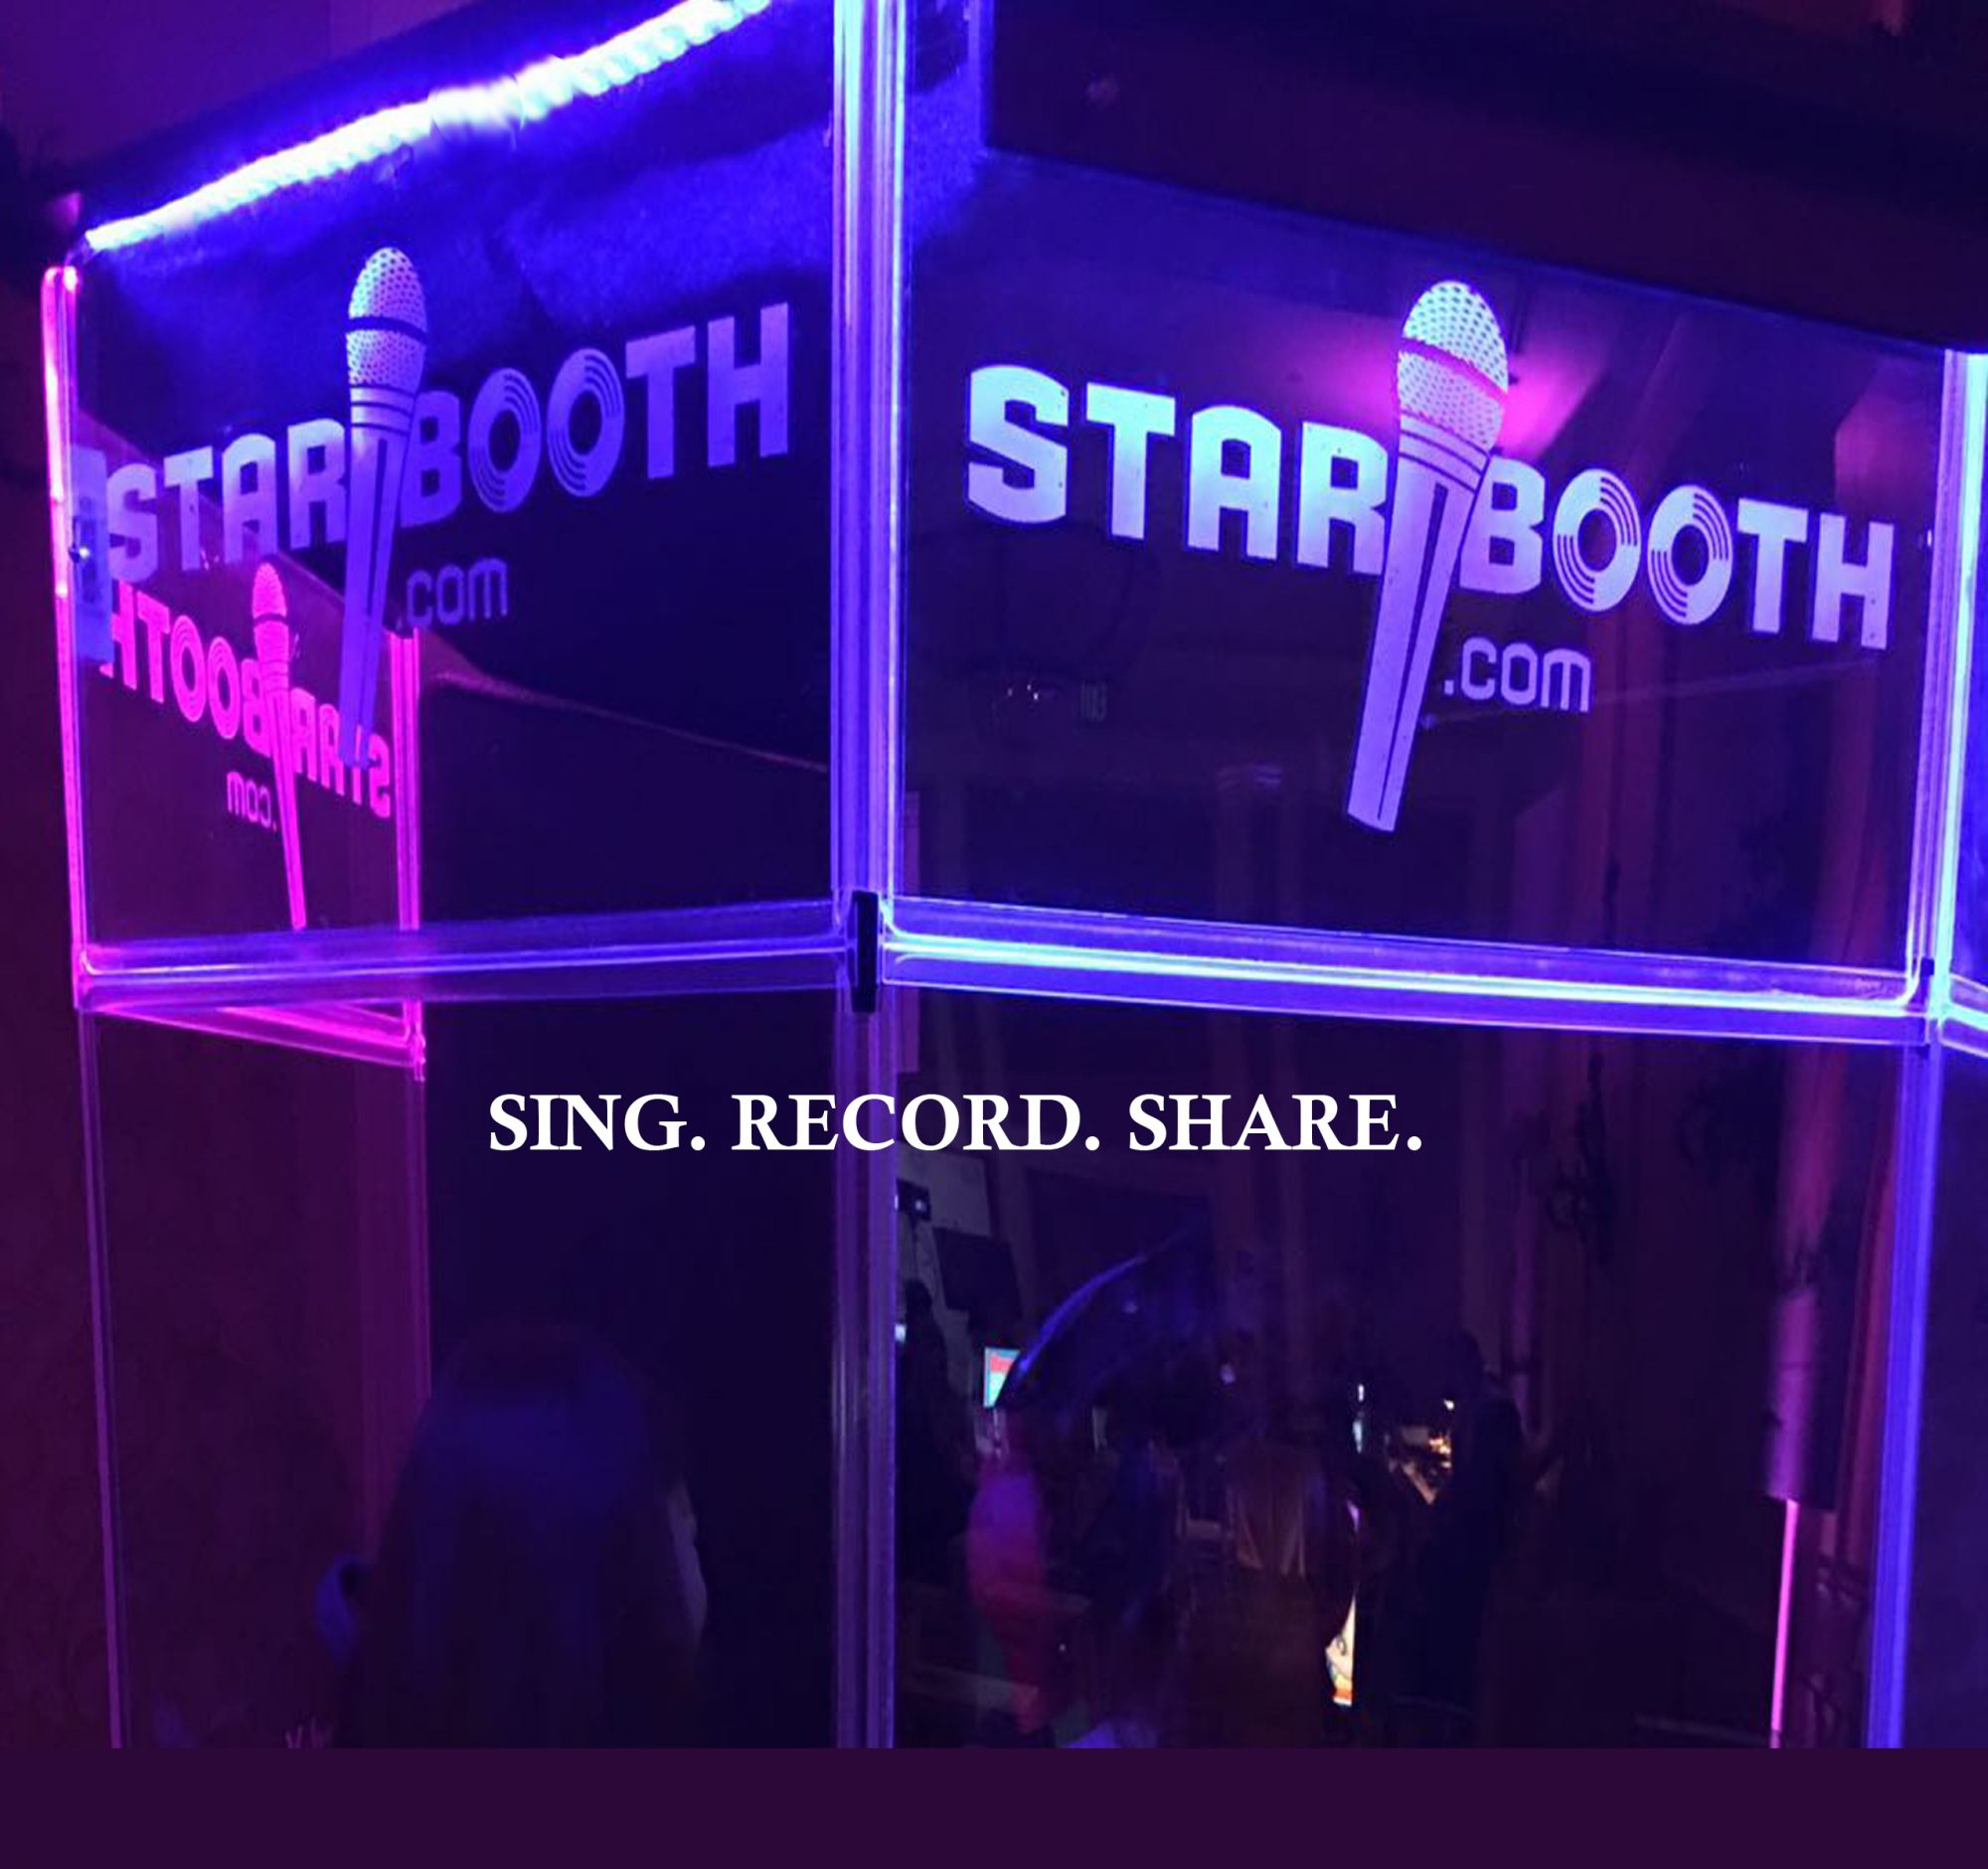 StarBooth  events